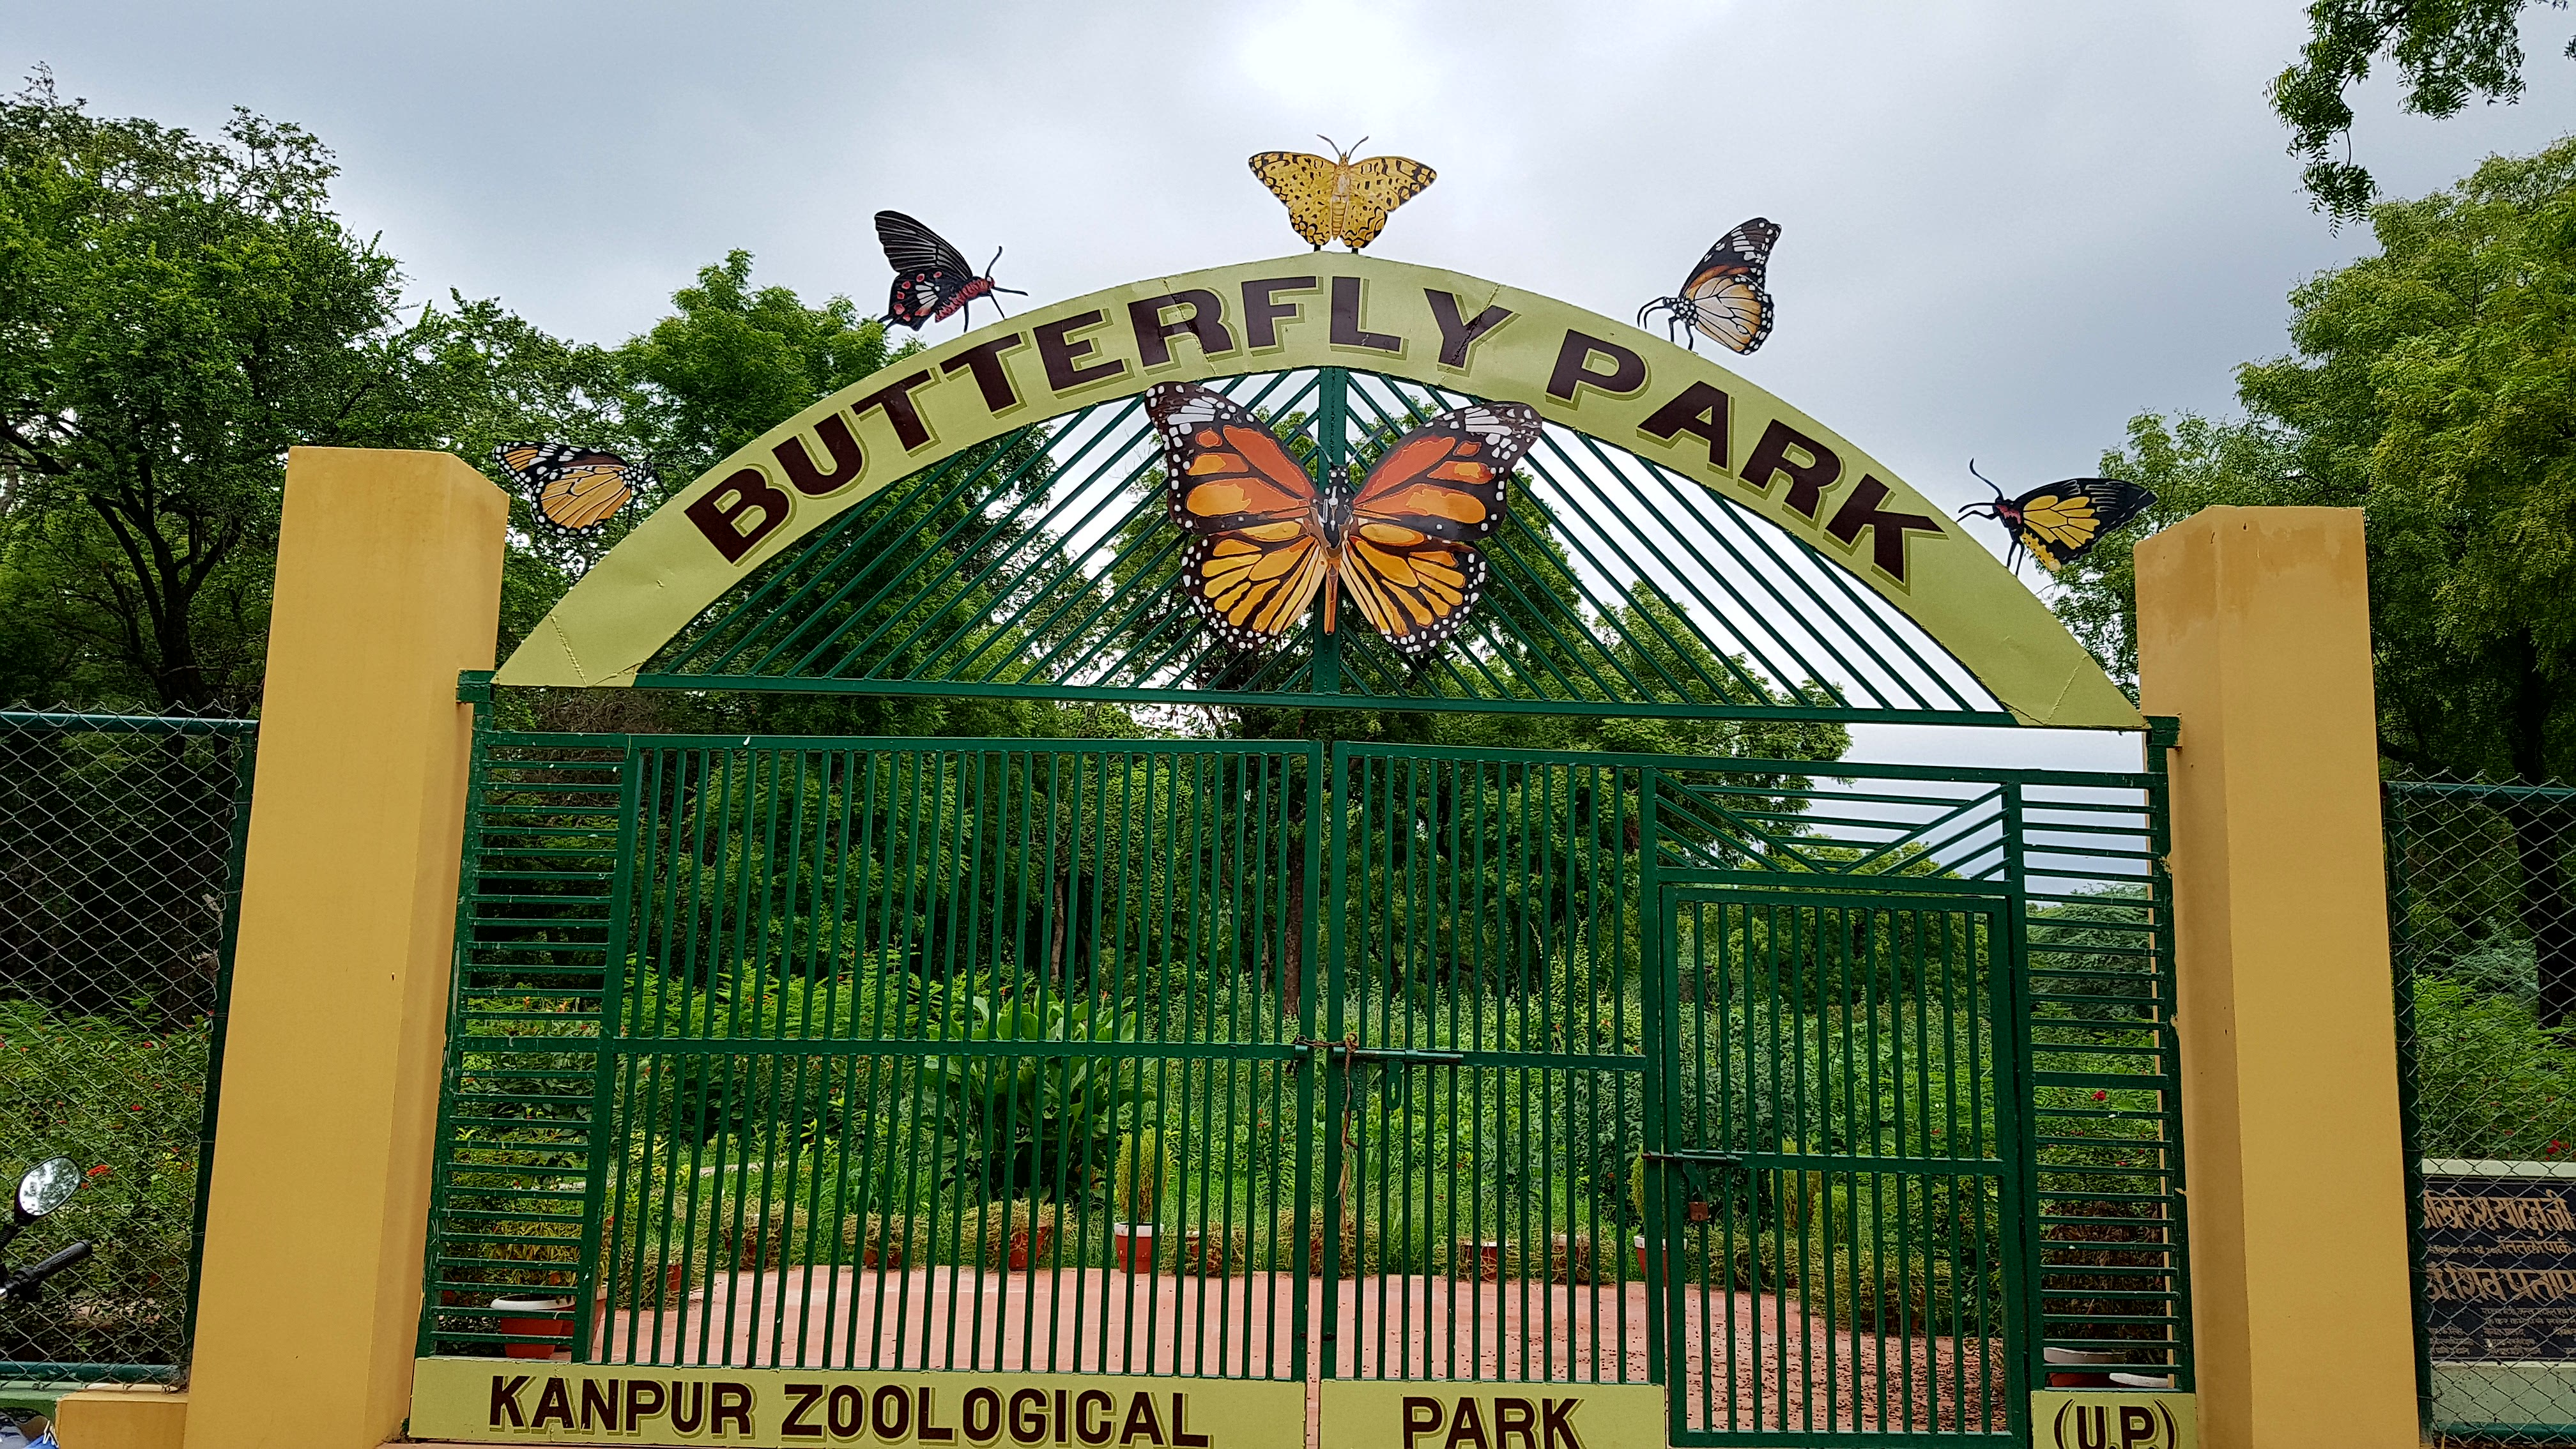 Kanpur Zoological Park